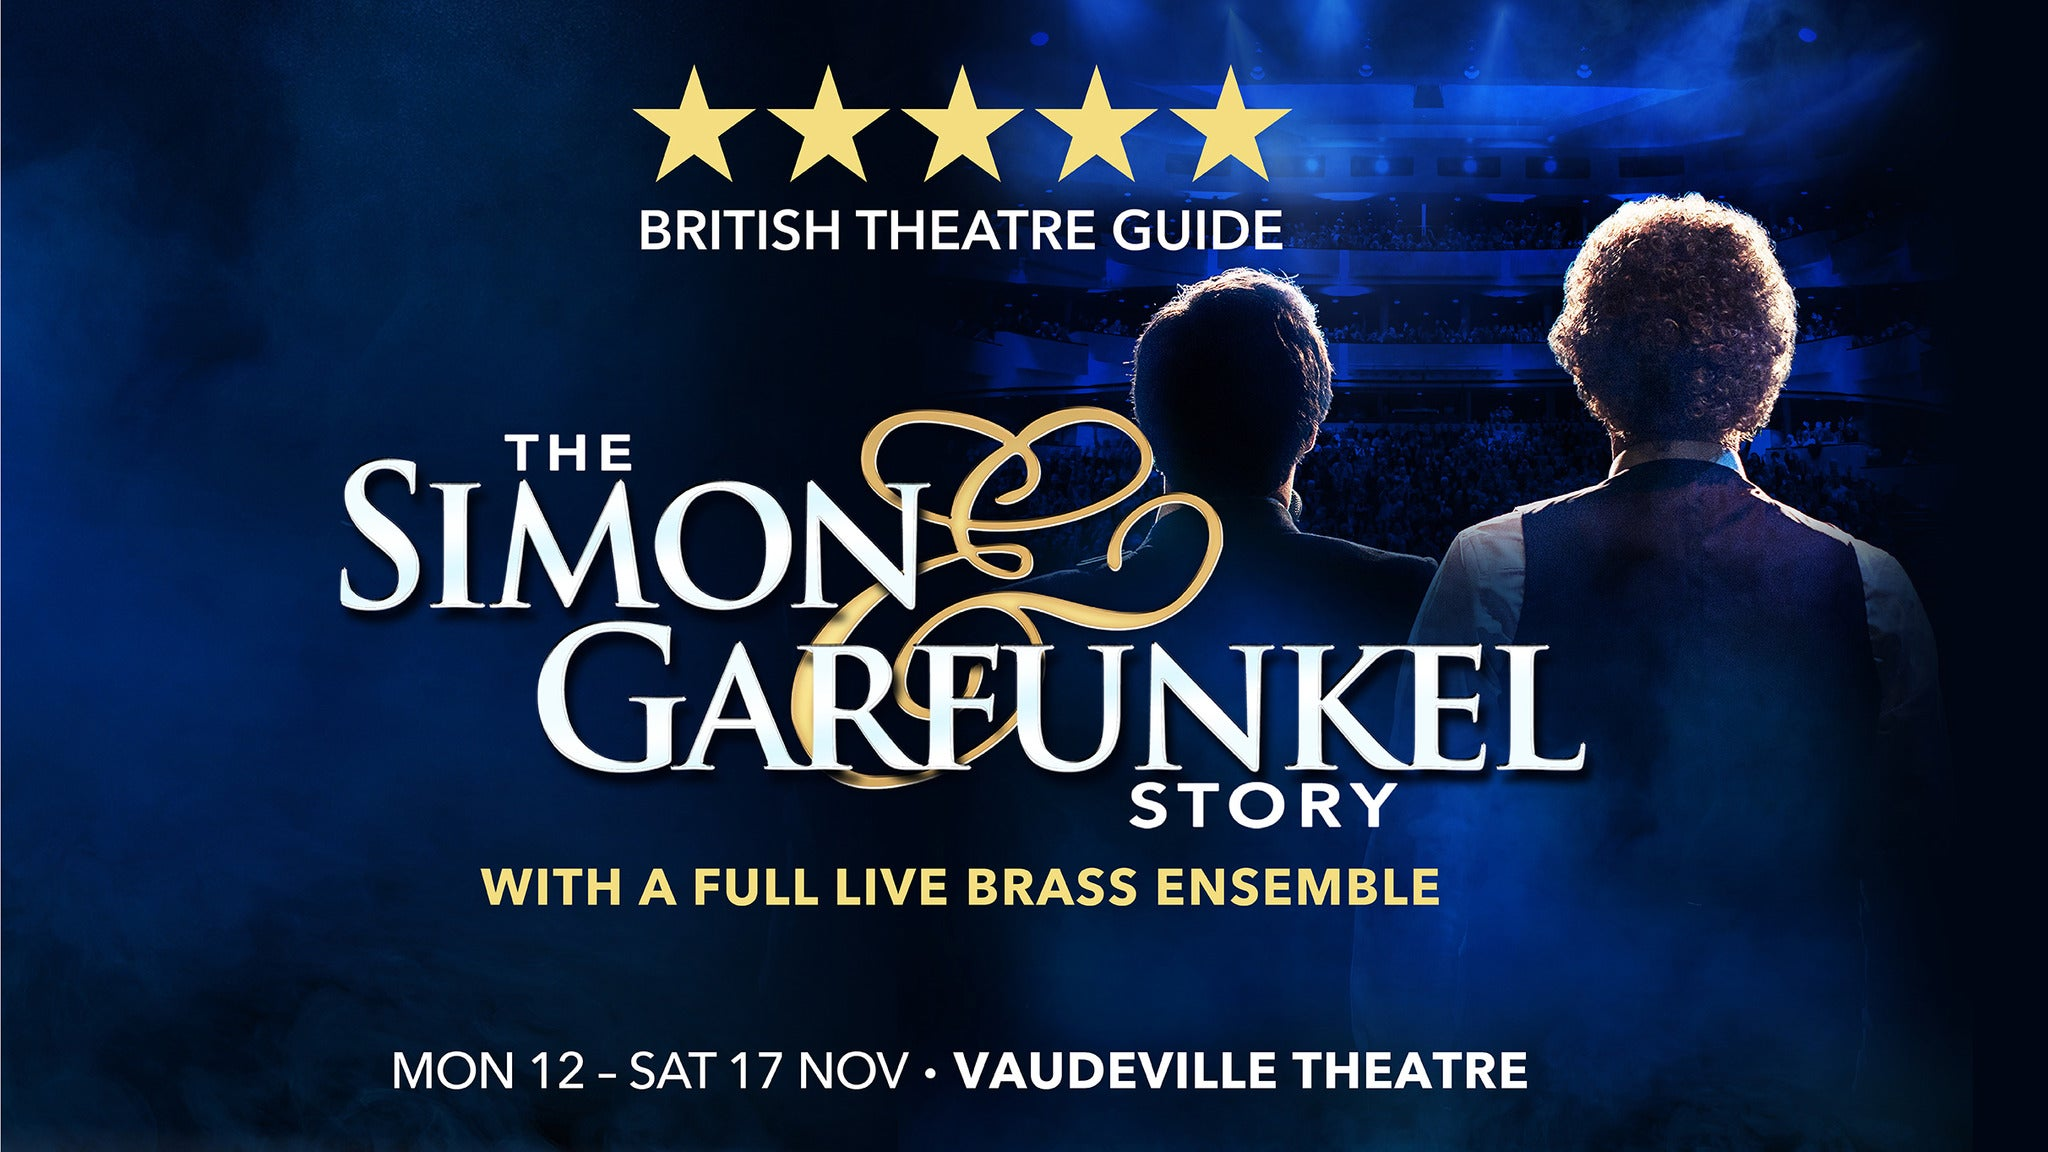 The Simon & Garfunkel Story at Bing Crosby Theatre